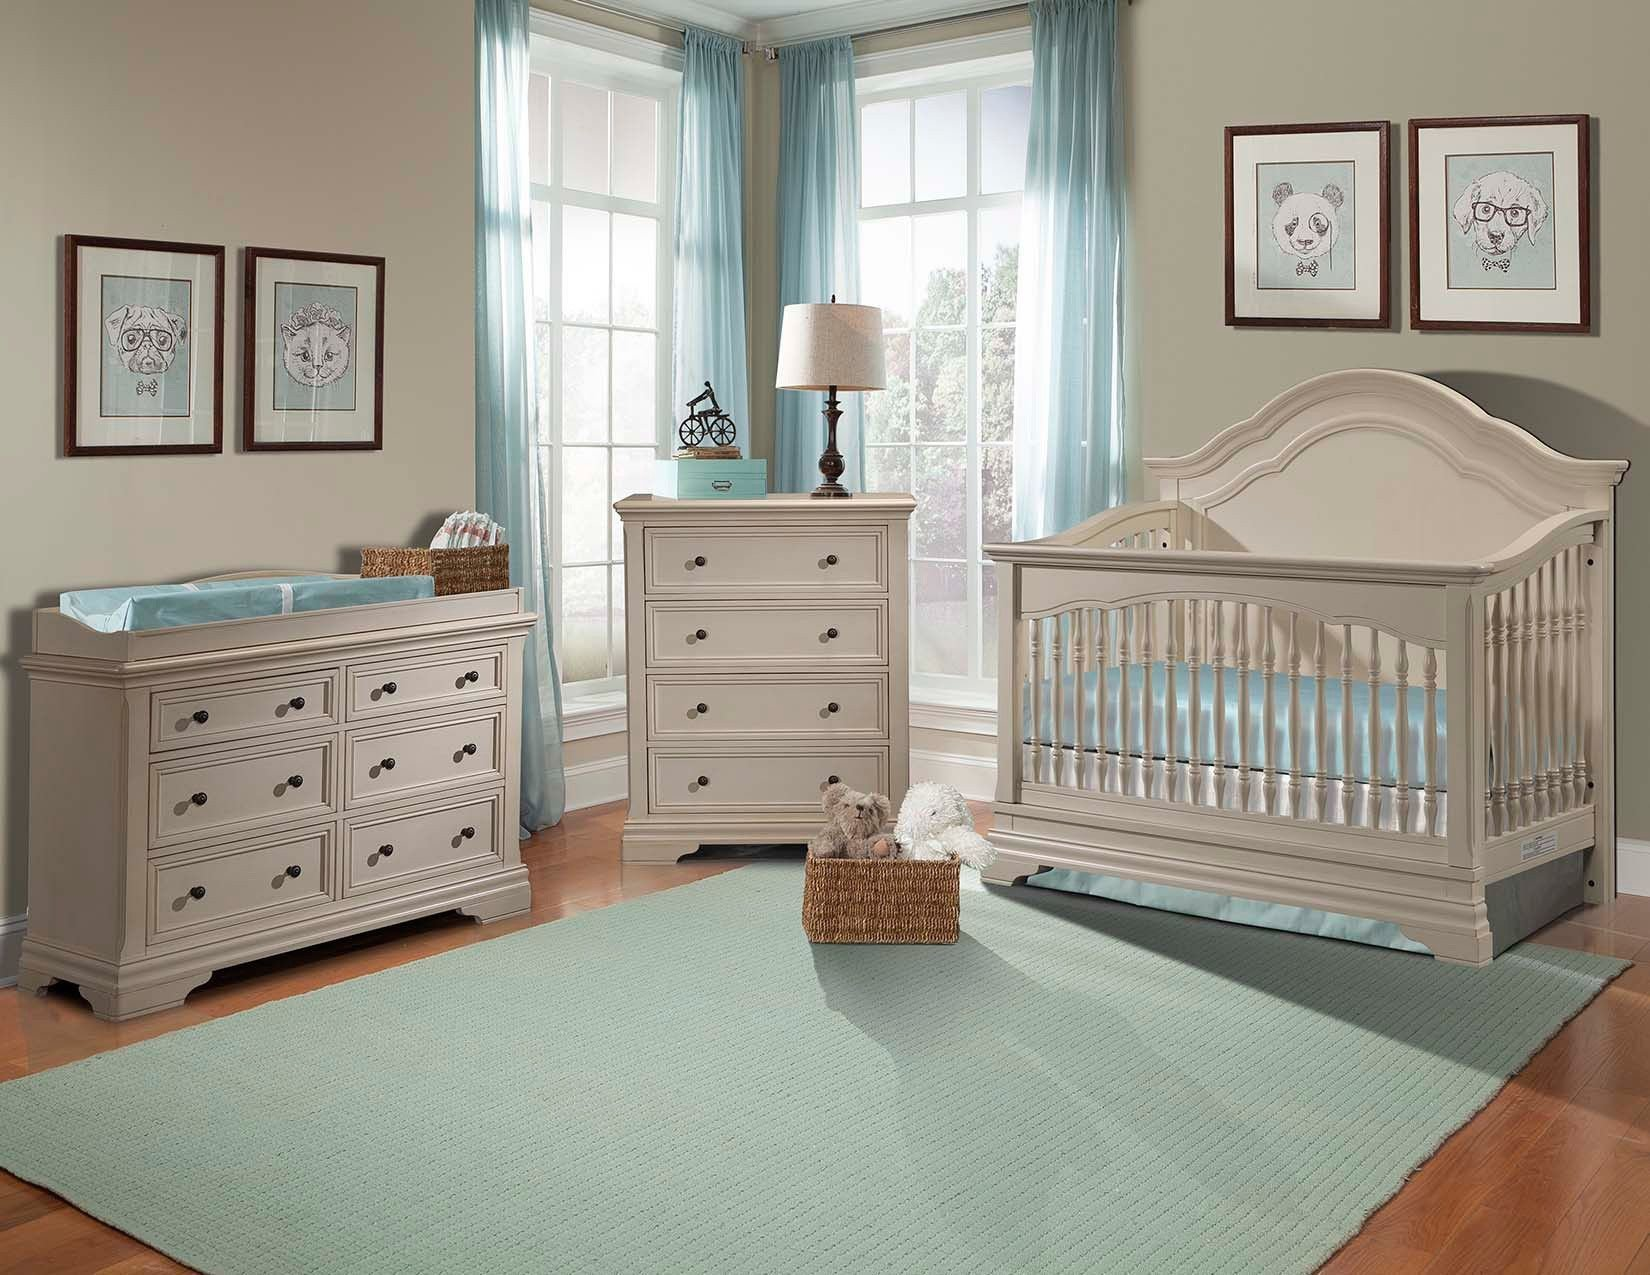 Best Stella Baby And Child Athena 3 Piece Nursery Set In Belgium Cream Also Comes In French White At With Pictures